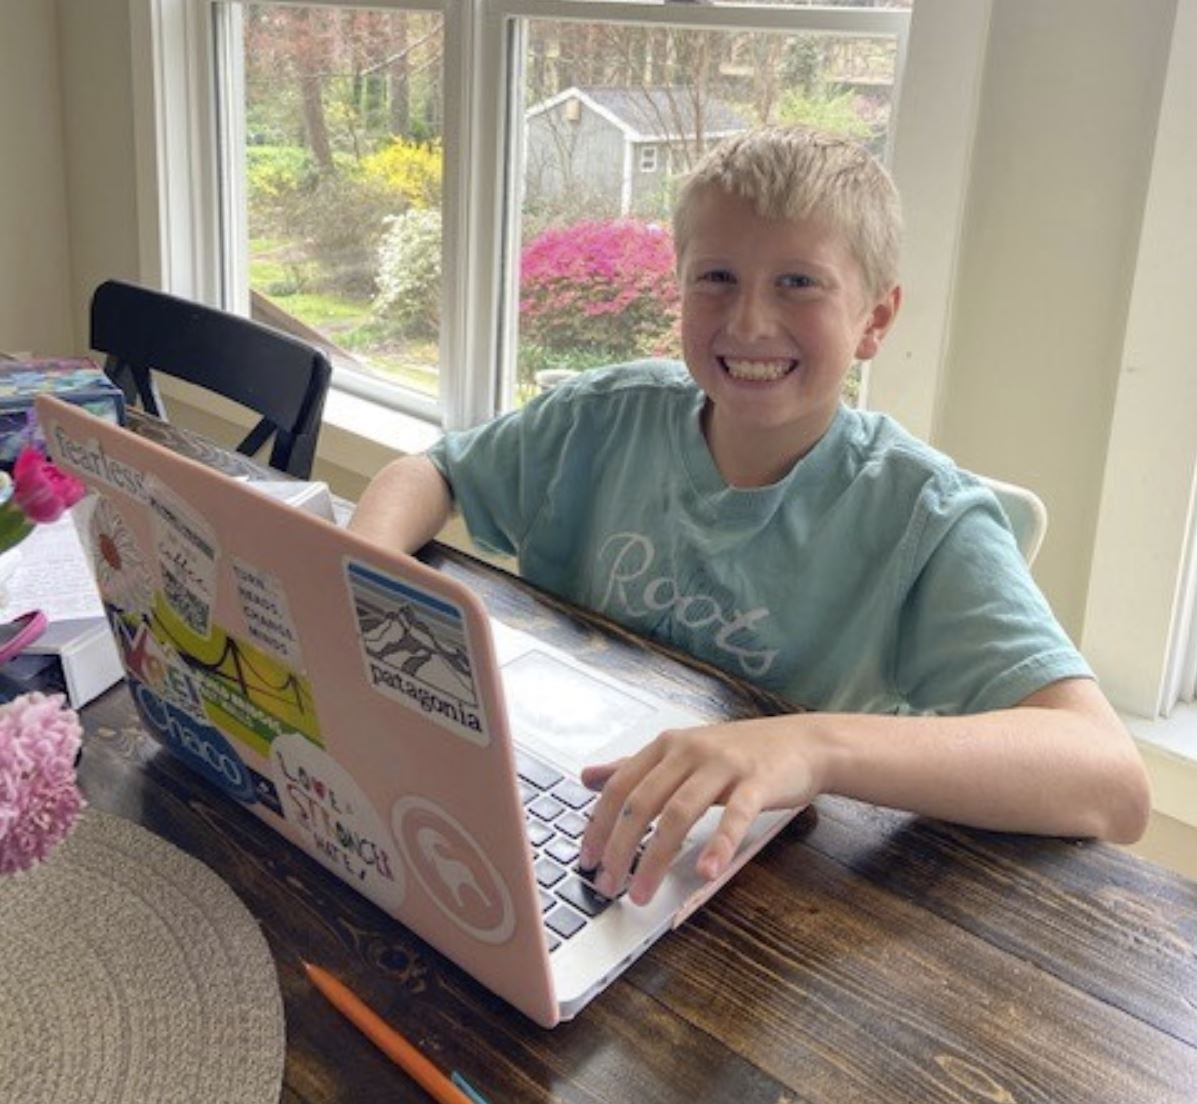 Student engaged in digital learning at home.